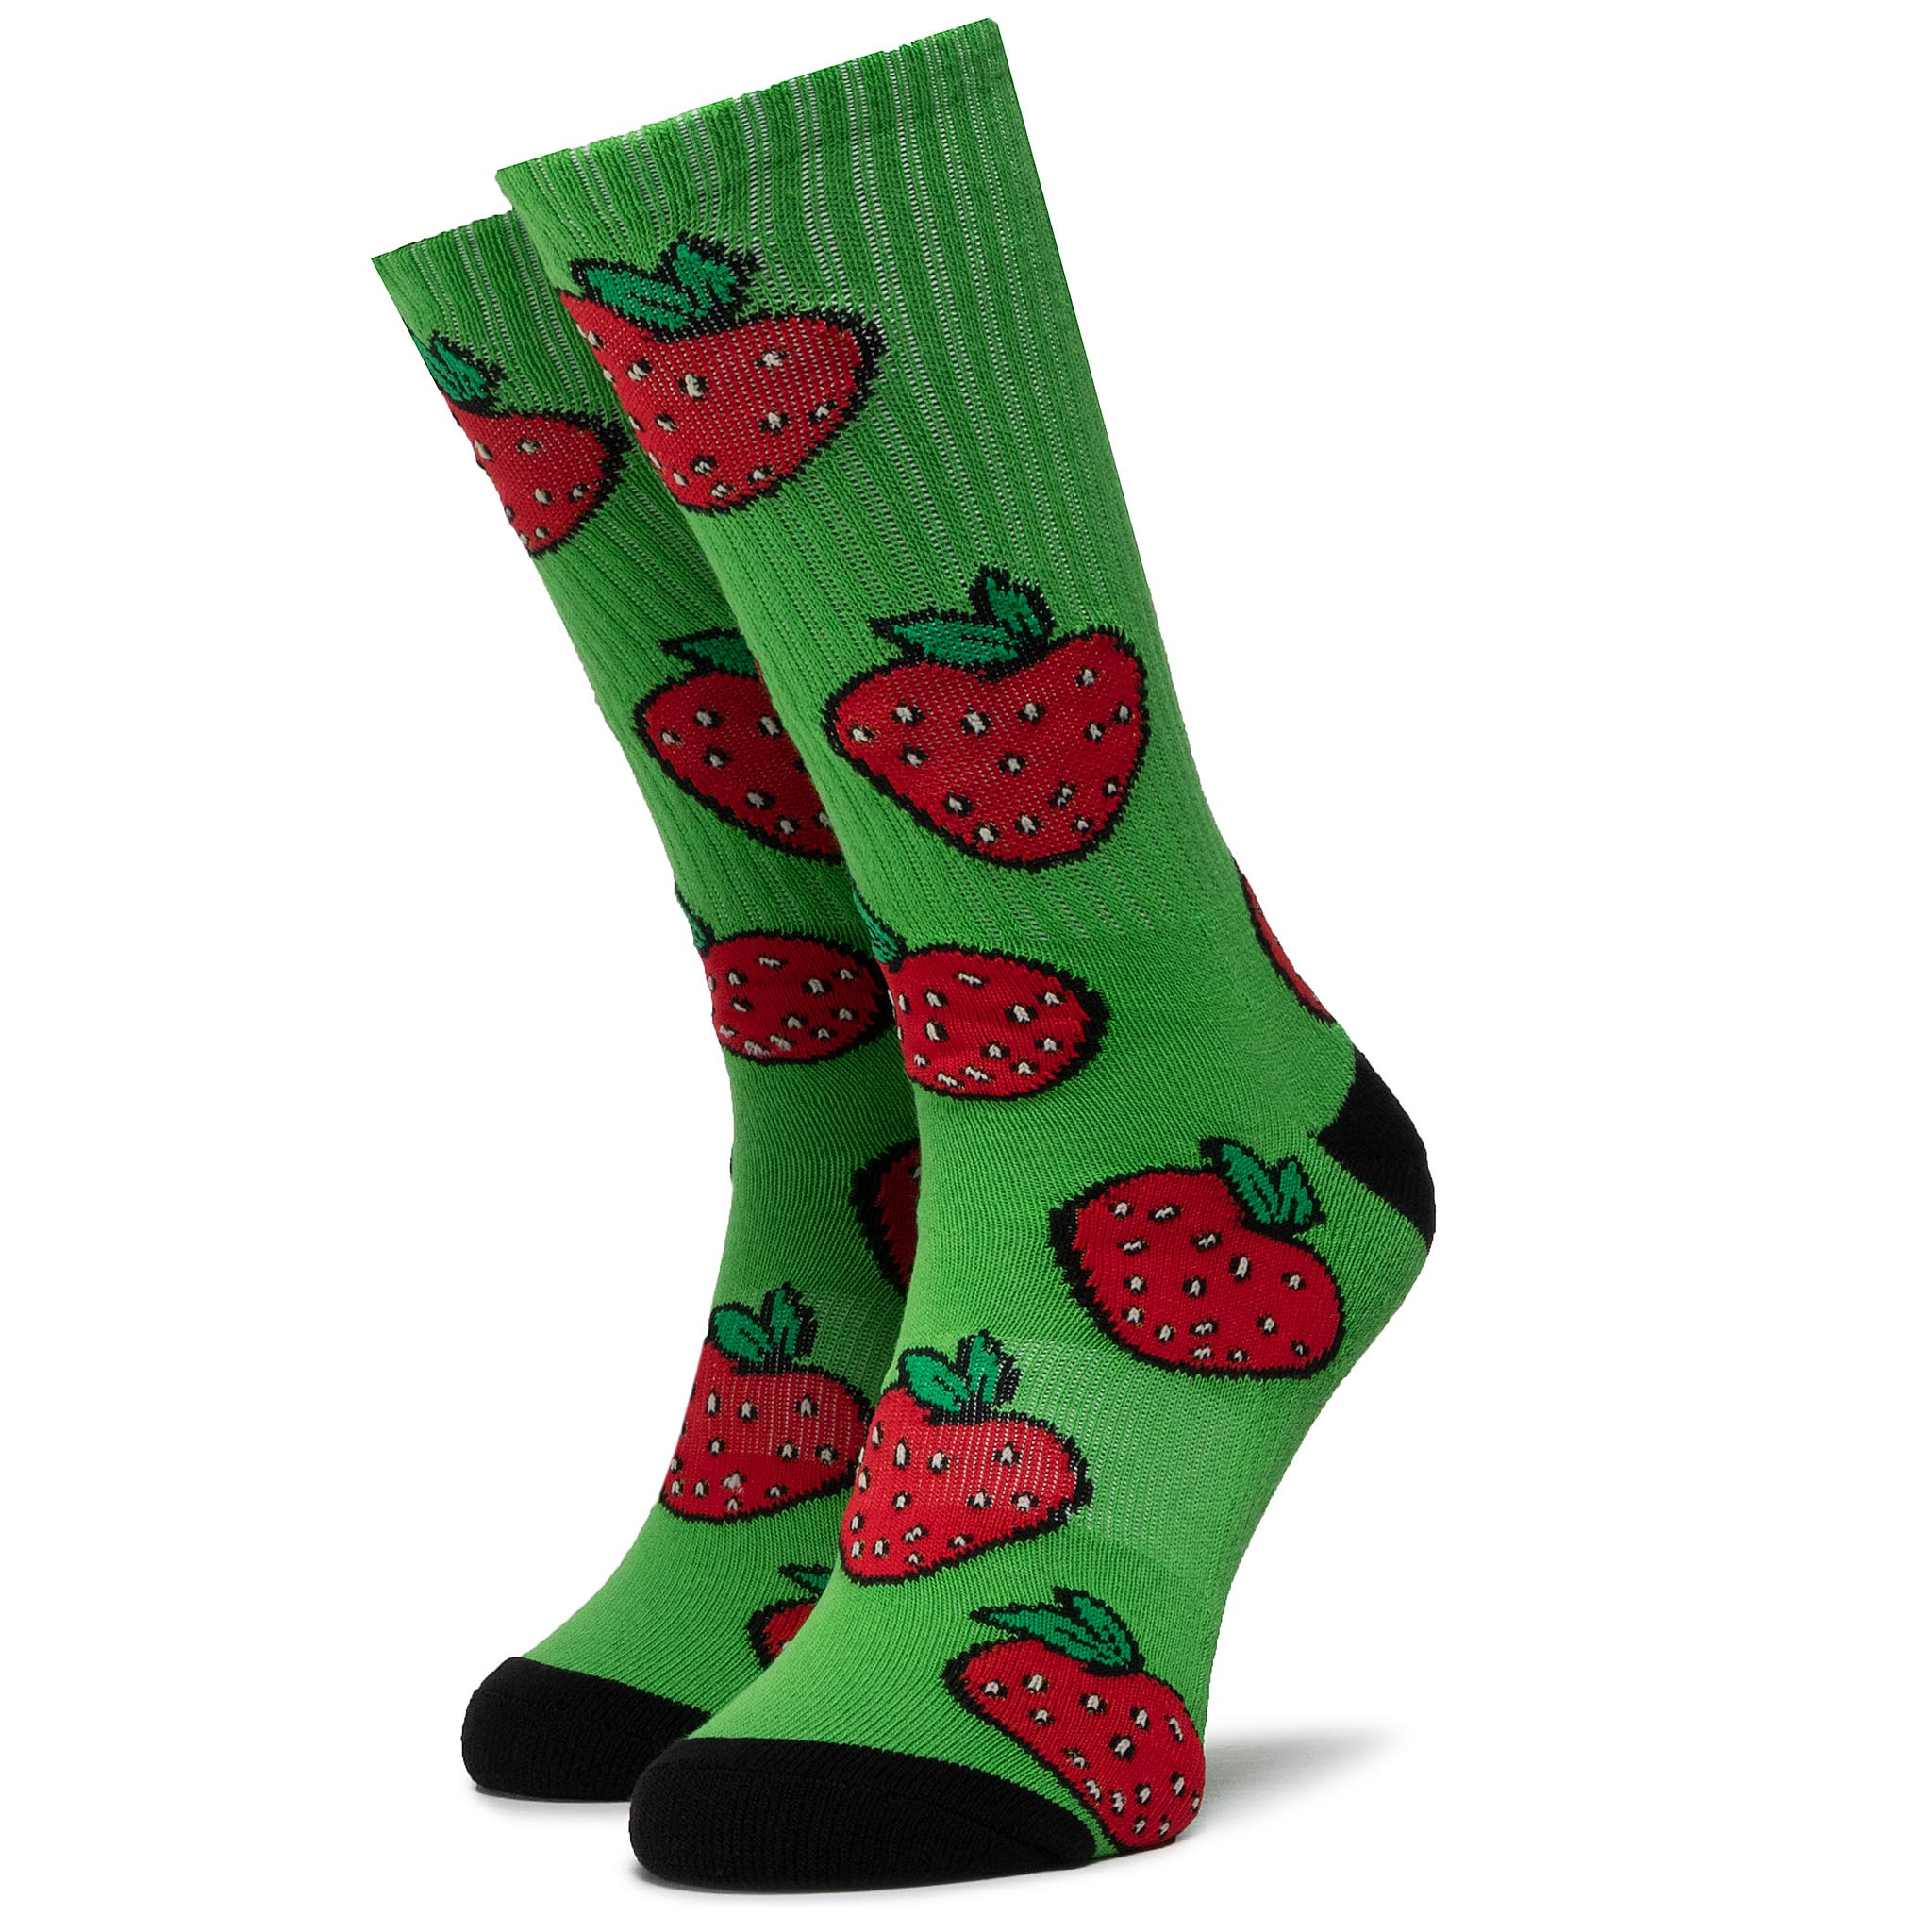 Șosete Înalte Unisex Huf - Strawberry Sock Sk0046 R.Os Shamrock imagine epantofi.ro 2021